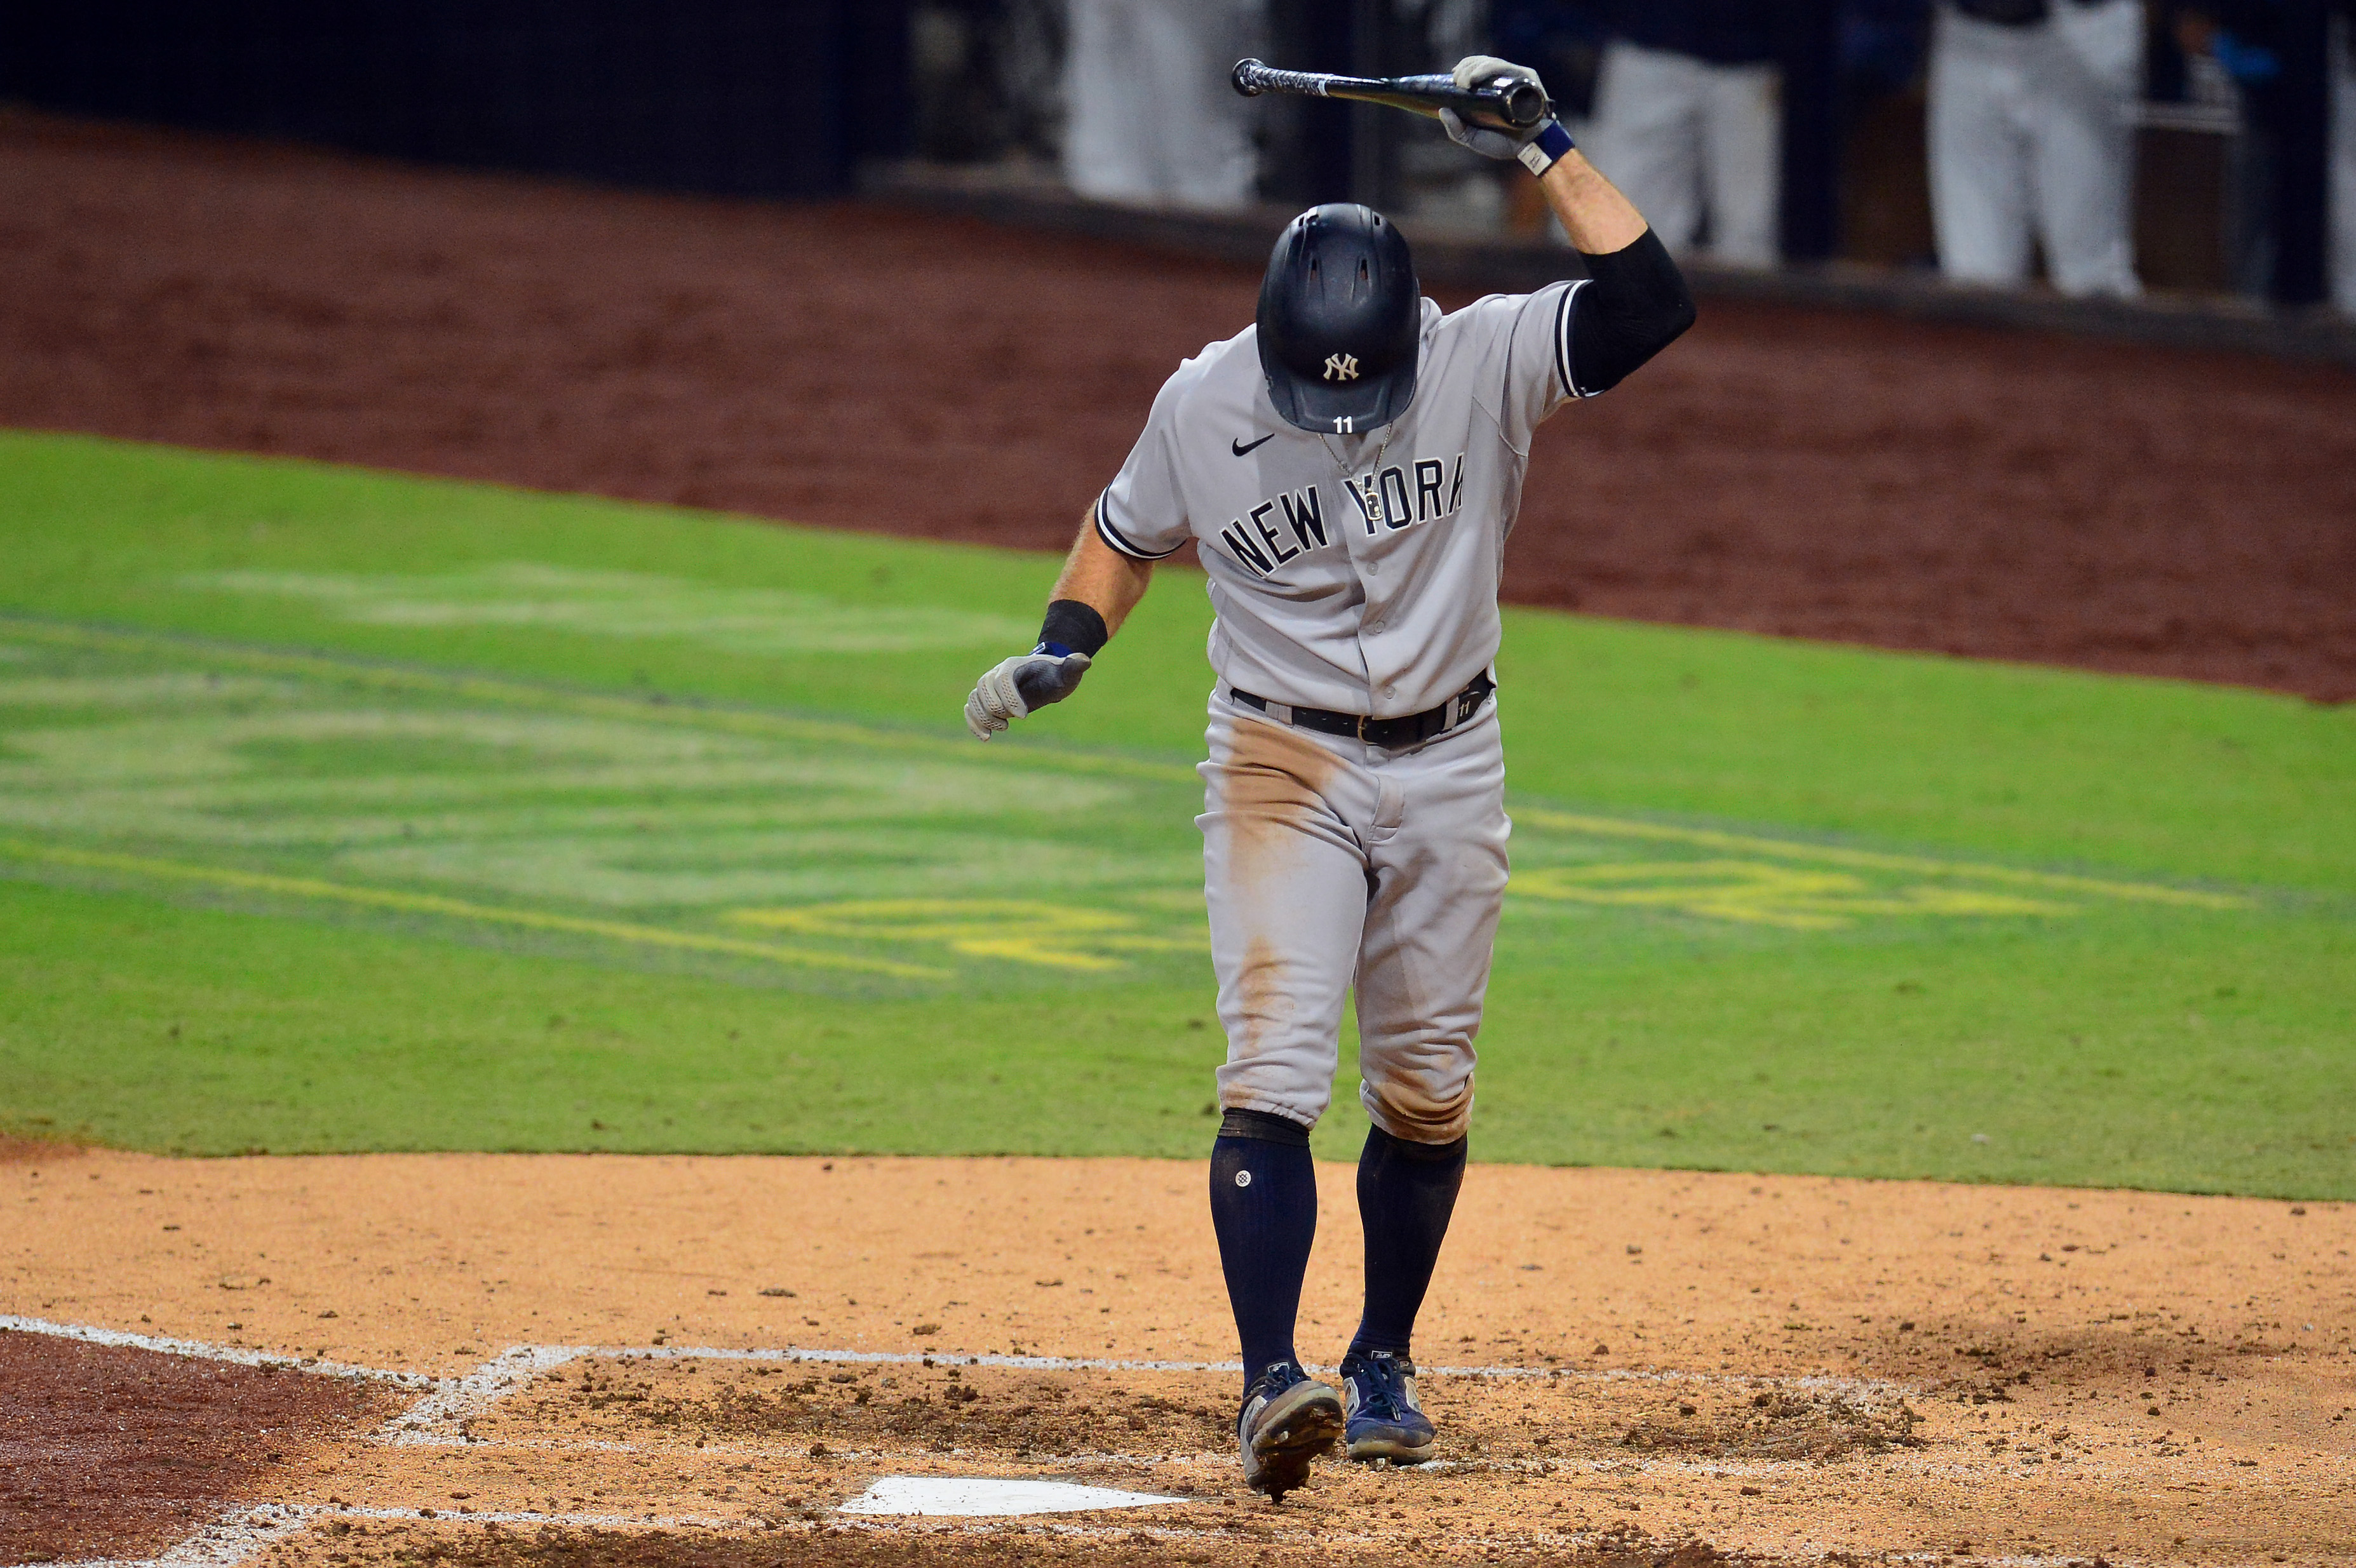 New York Yankees left fielder Brett Gardner (11) reacts after striking out against the Tampa Bay Rays to end the top of the seventh inning of game five of the 2020 ALDS at Petco Park.